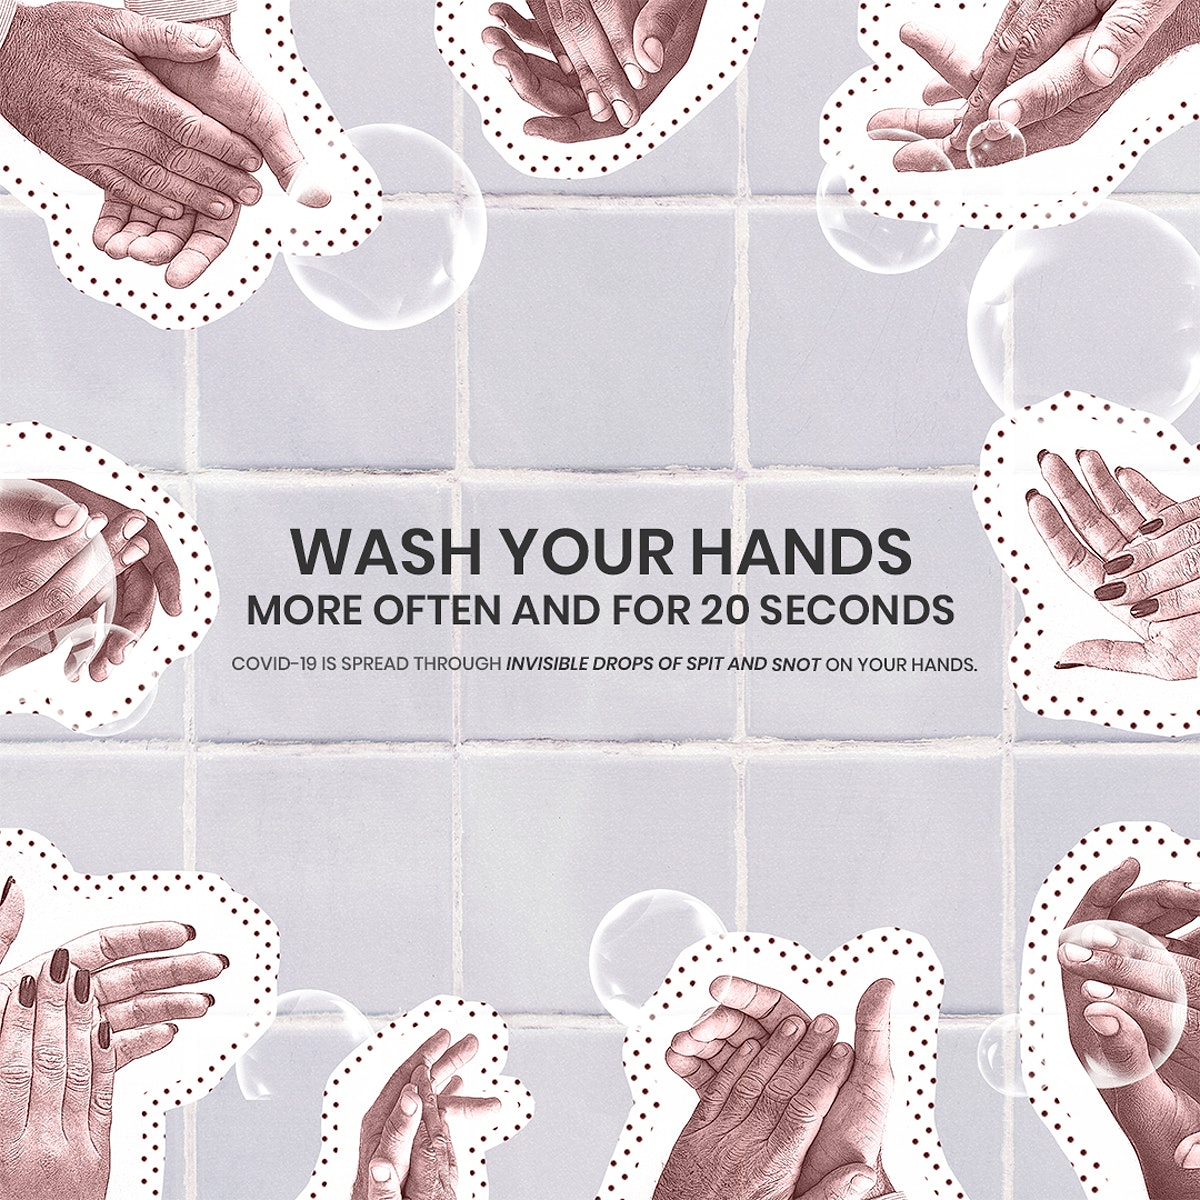 Wash your hands to prevent Covid-19. This image is part our collaboration with the Behavioural Sciences team at Hill+Knowlton…